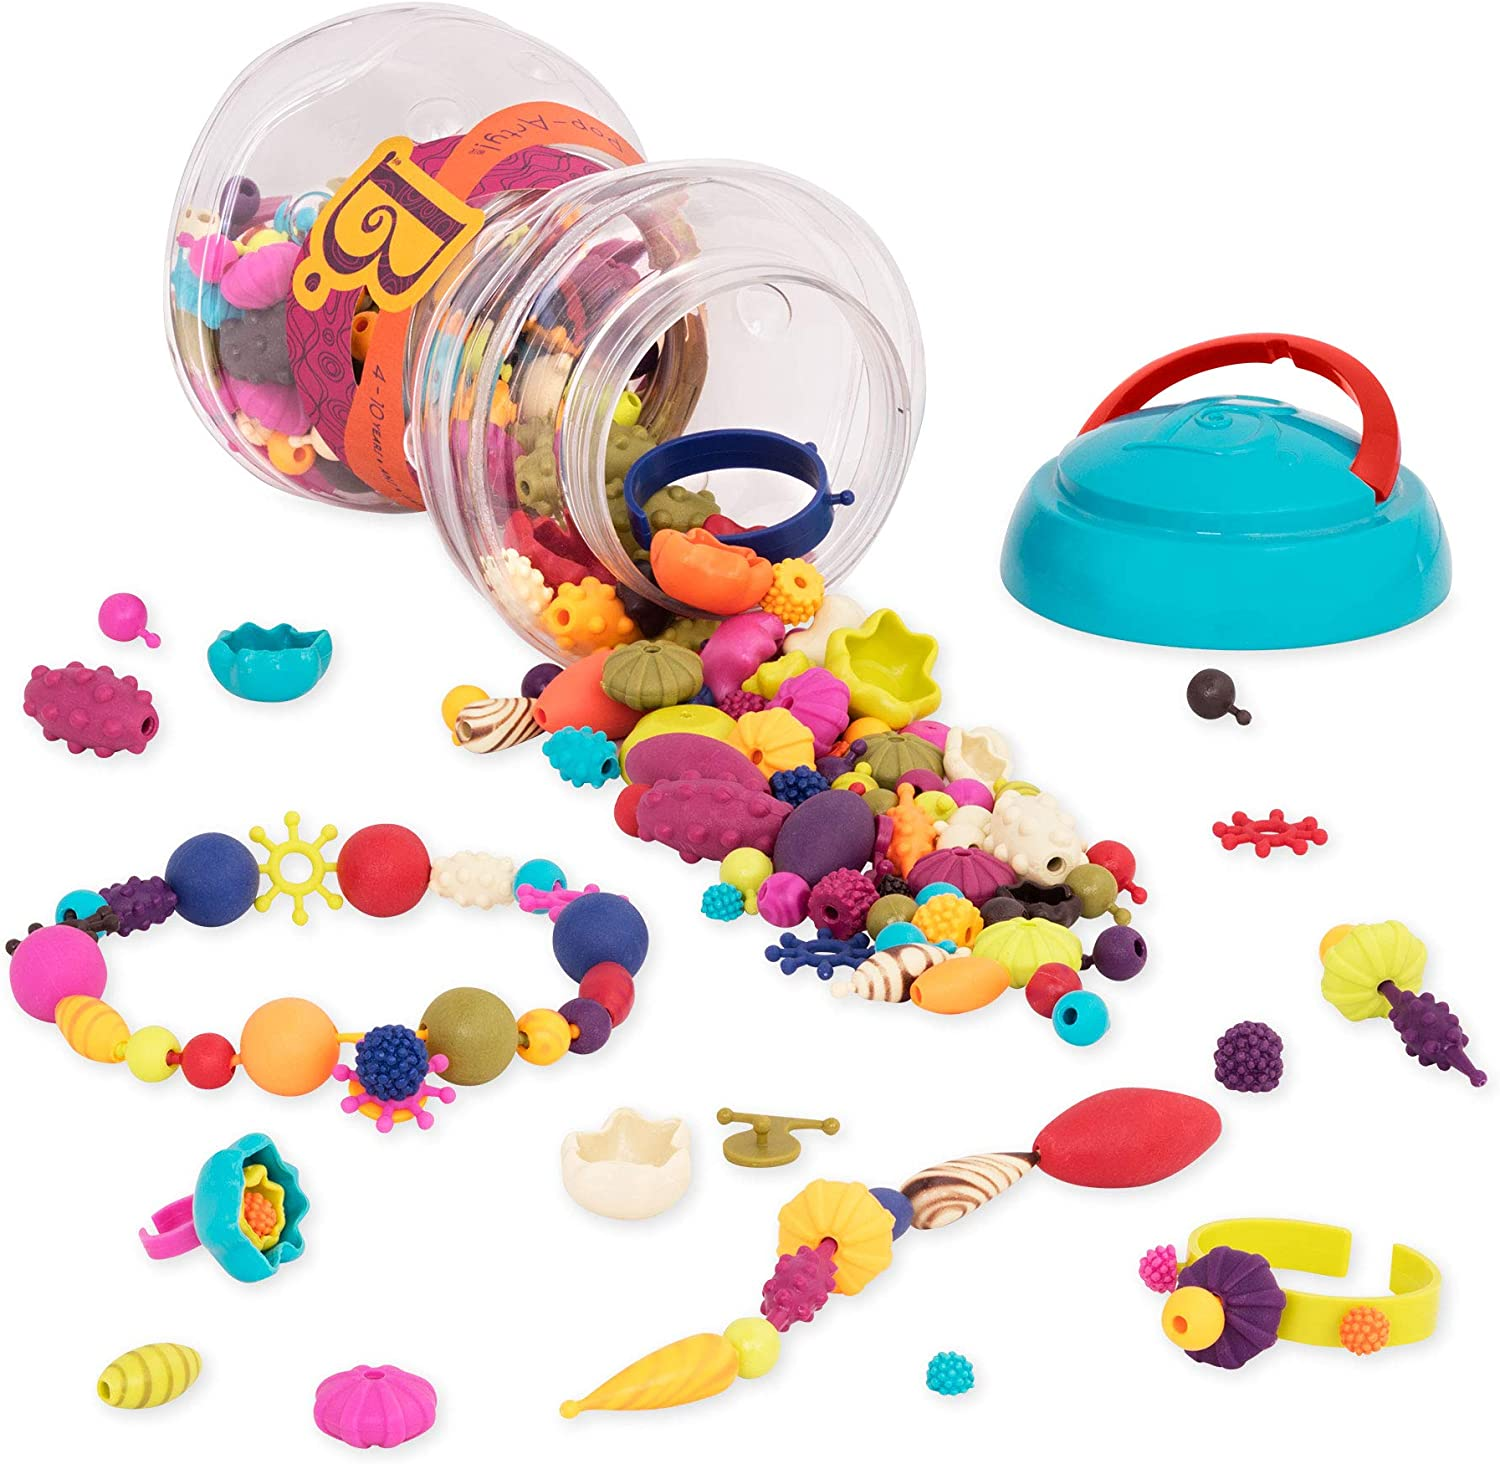 B. Toys – 300 Pcs – Pop Snap Bead Jewelry Set for Kids – Pop Arty! – DIY Craft Jewelry Making Kit – Creative Necklaces, Rings, Bracelets – 4 Years +